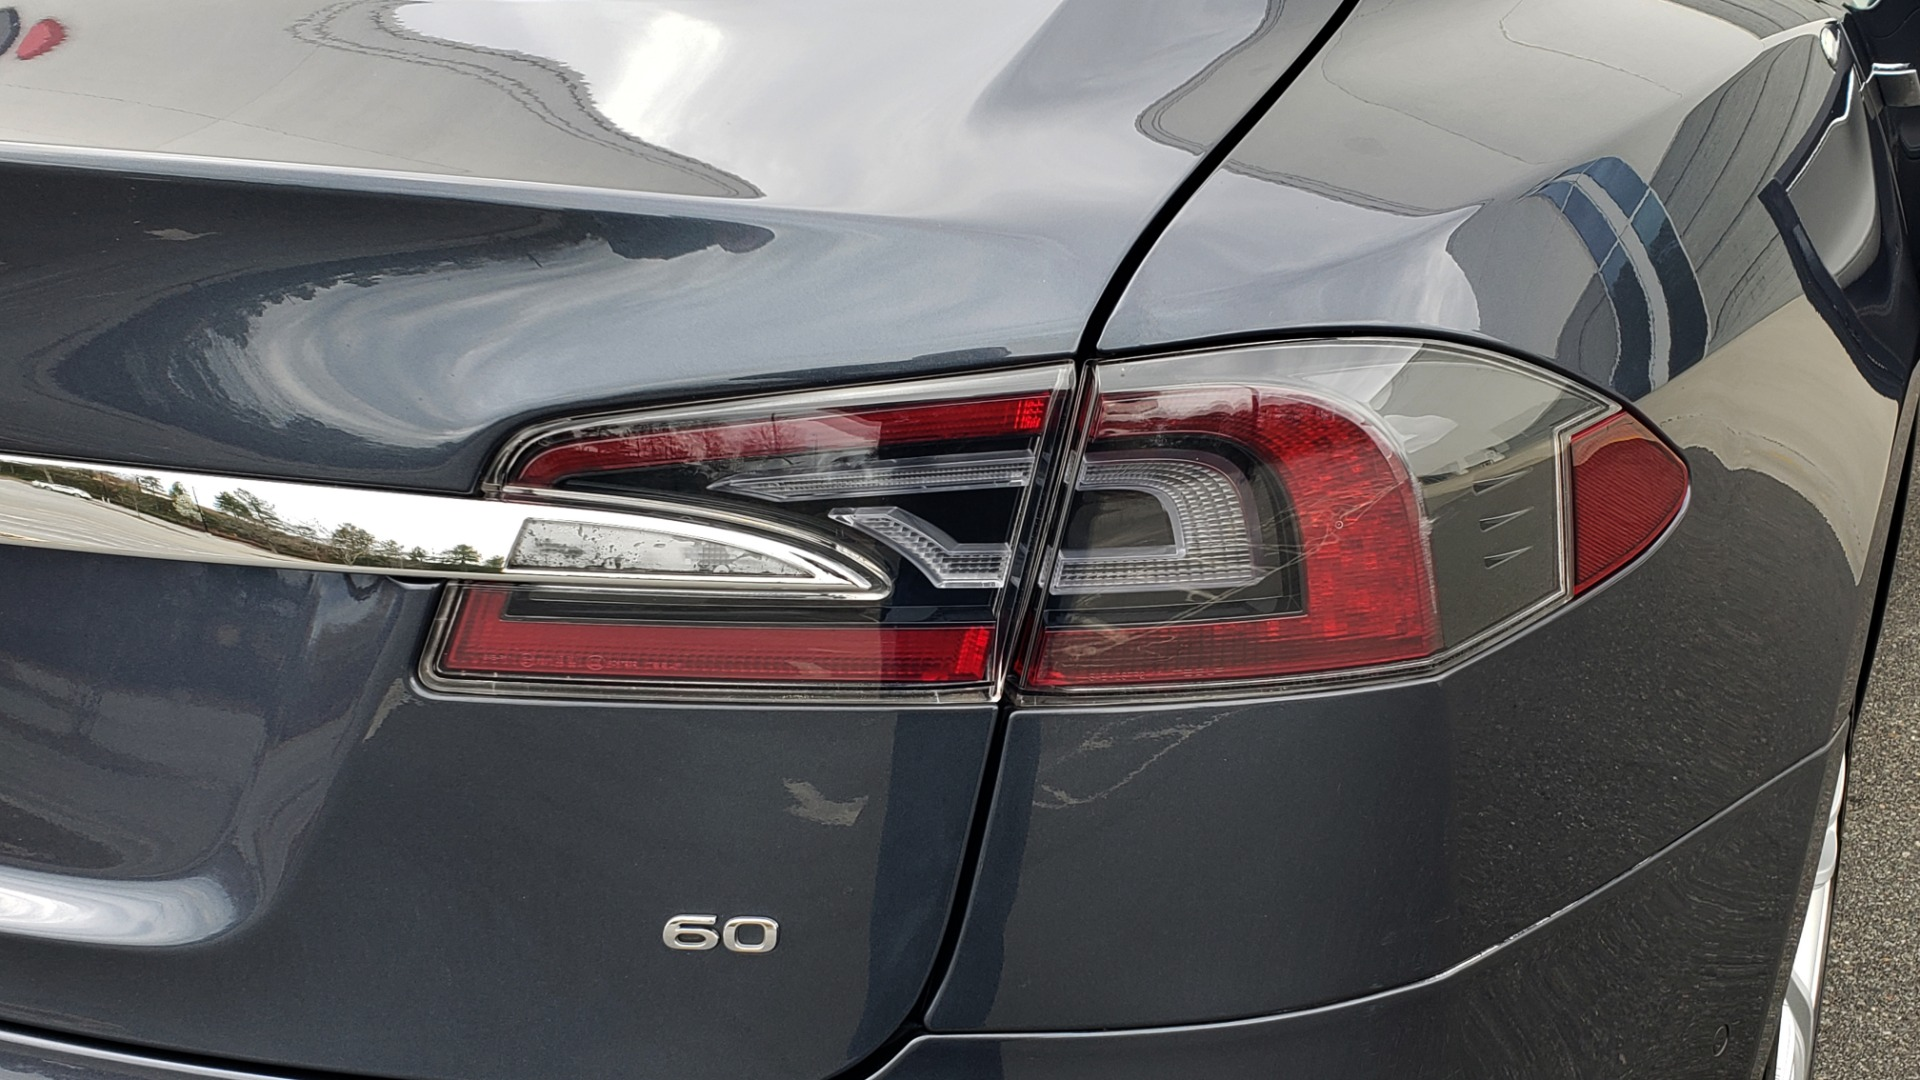 Used 2014 Tesla MODEL S 60 kWh BATTERY / TECH / NAV / SUBZERO / SUNROOF / REARVIEW for sale Sold at Formula Imports in Charlotte NC 28227 26